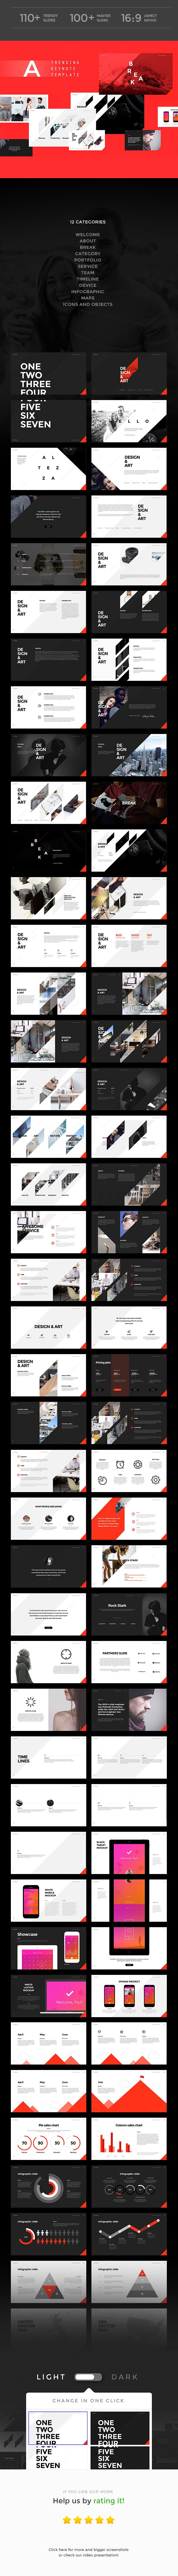 ALTEZZA Keynote Template. Download: https://graphicriver.net/item/altezza-keynote-template/18997064?ref=thanhdesign